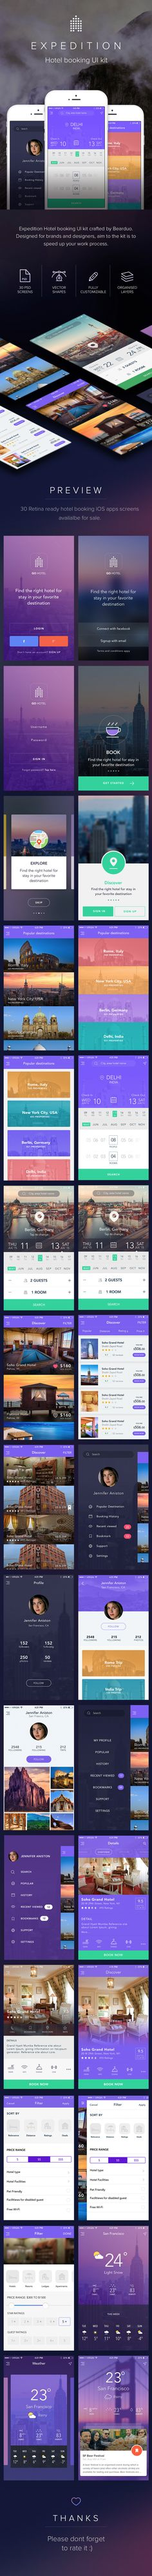 Expedition Hotel booking UI kit designed for brands and designers, Package includes 30 PSD screens. The whole pack is oriented on hotel/ travel segment, and it covers all the screens that you need to build a beautiful app.This UI Kit includes:• 30 PSD…